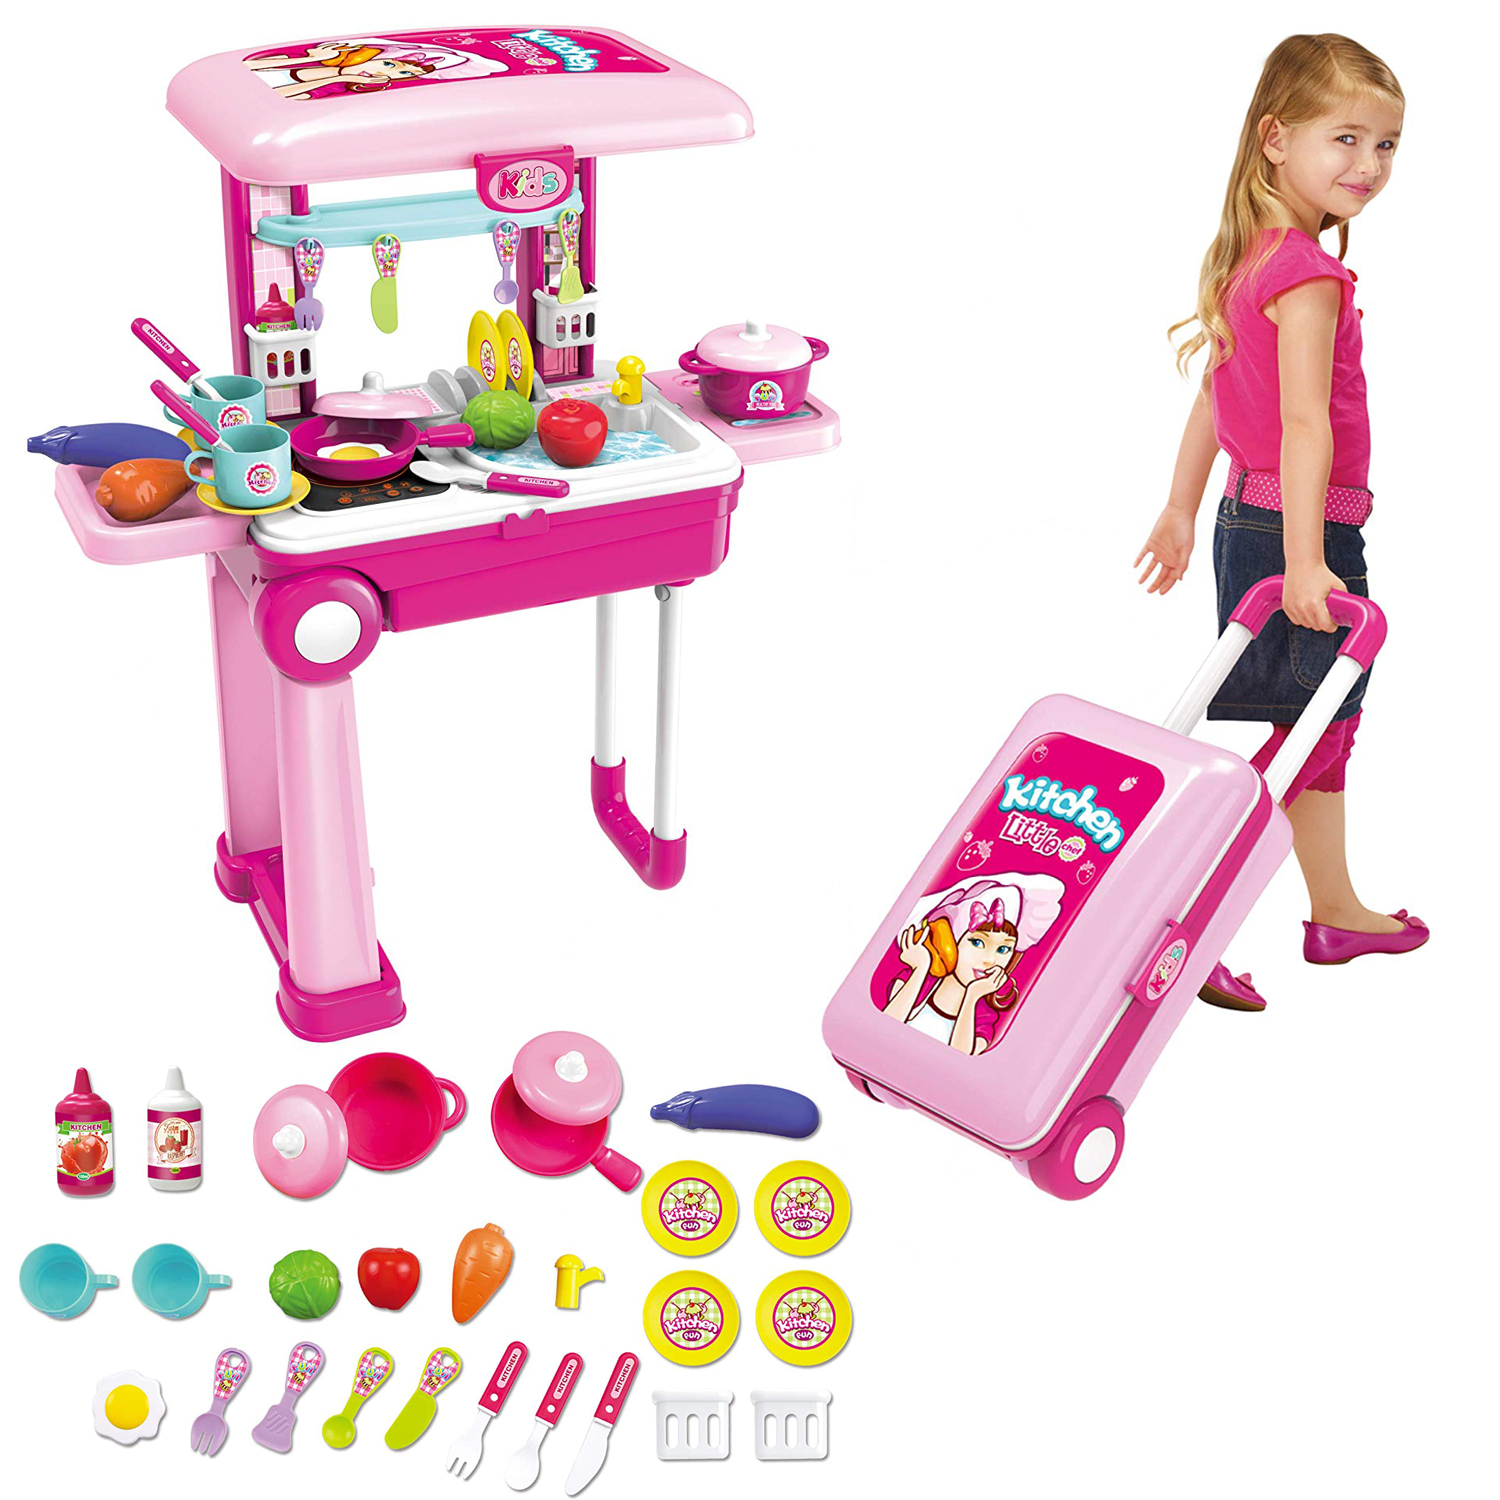 Details about 2 in 1 Travel Suitcase Kitchen Set Children Dishes ABS Chef  Toy Pretend Play Kit